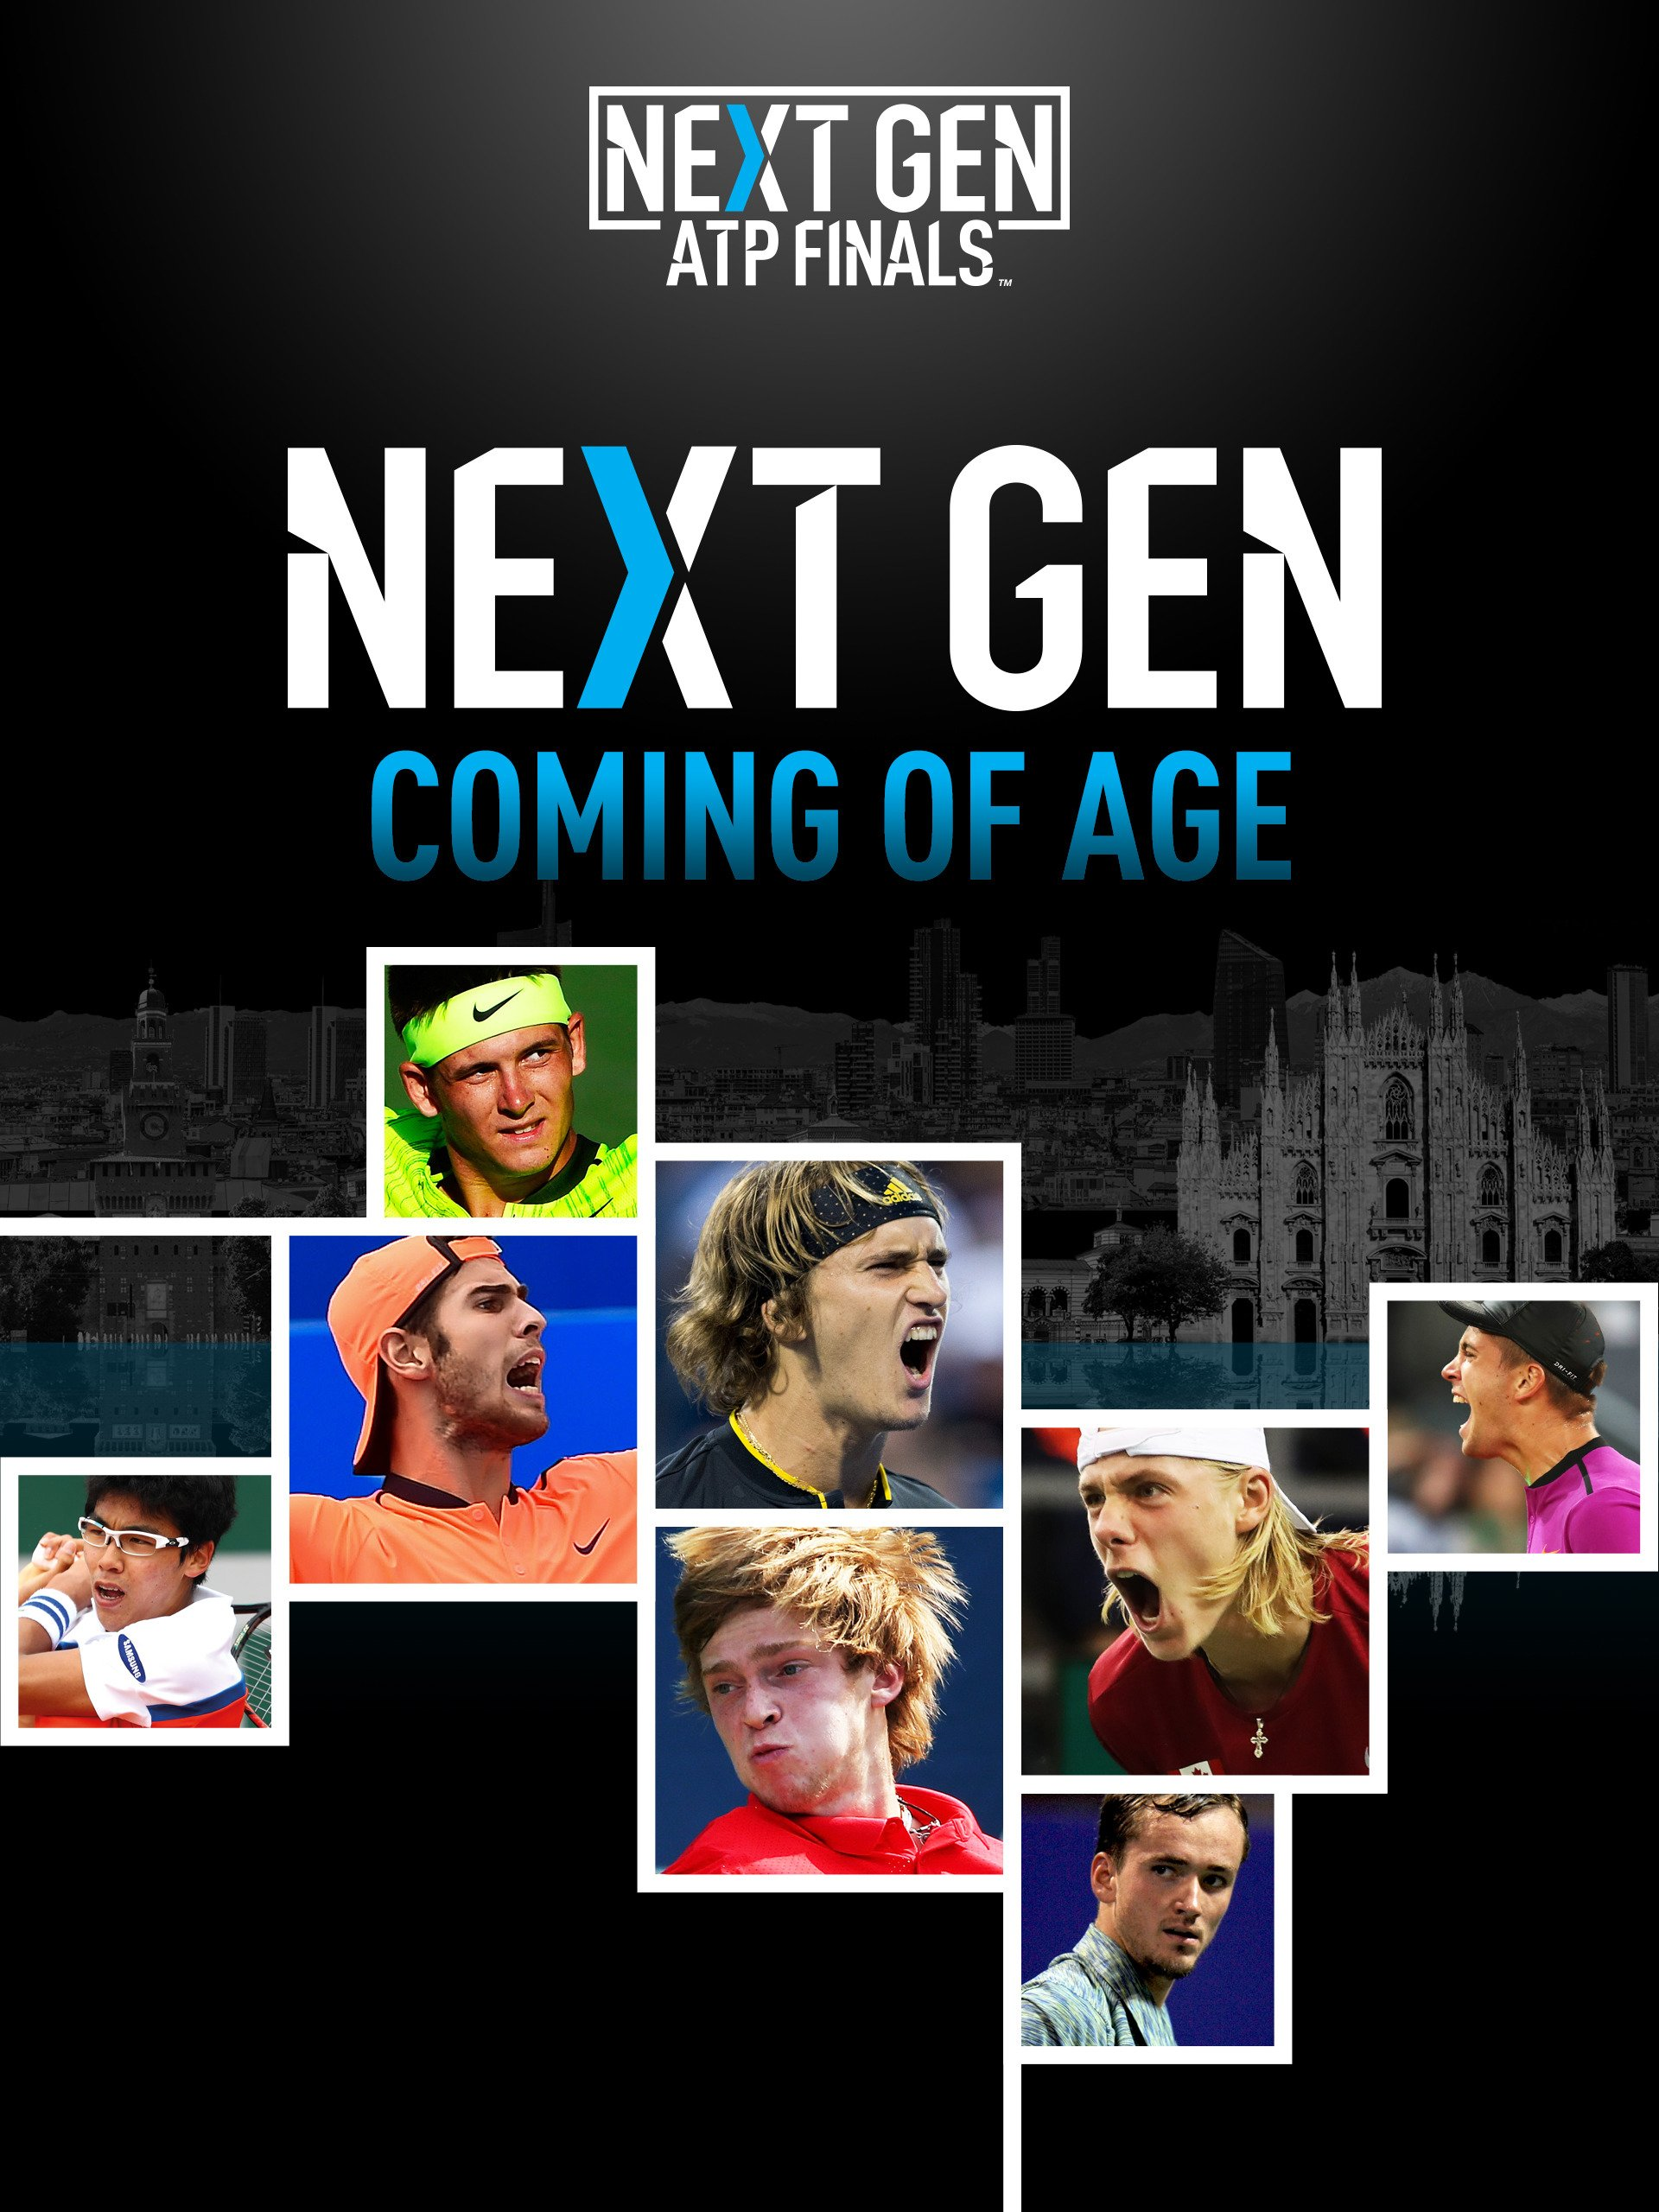 NEXT GEN THE COMING OF AGE